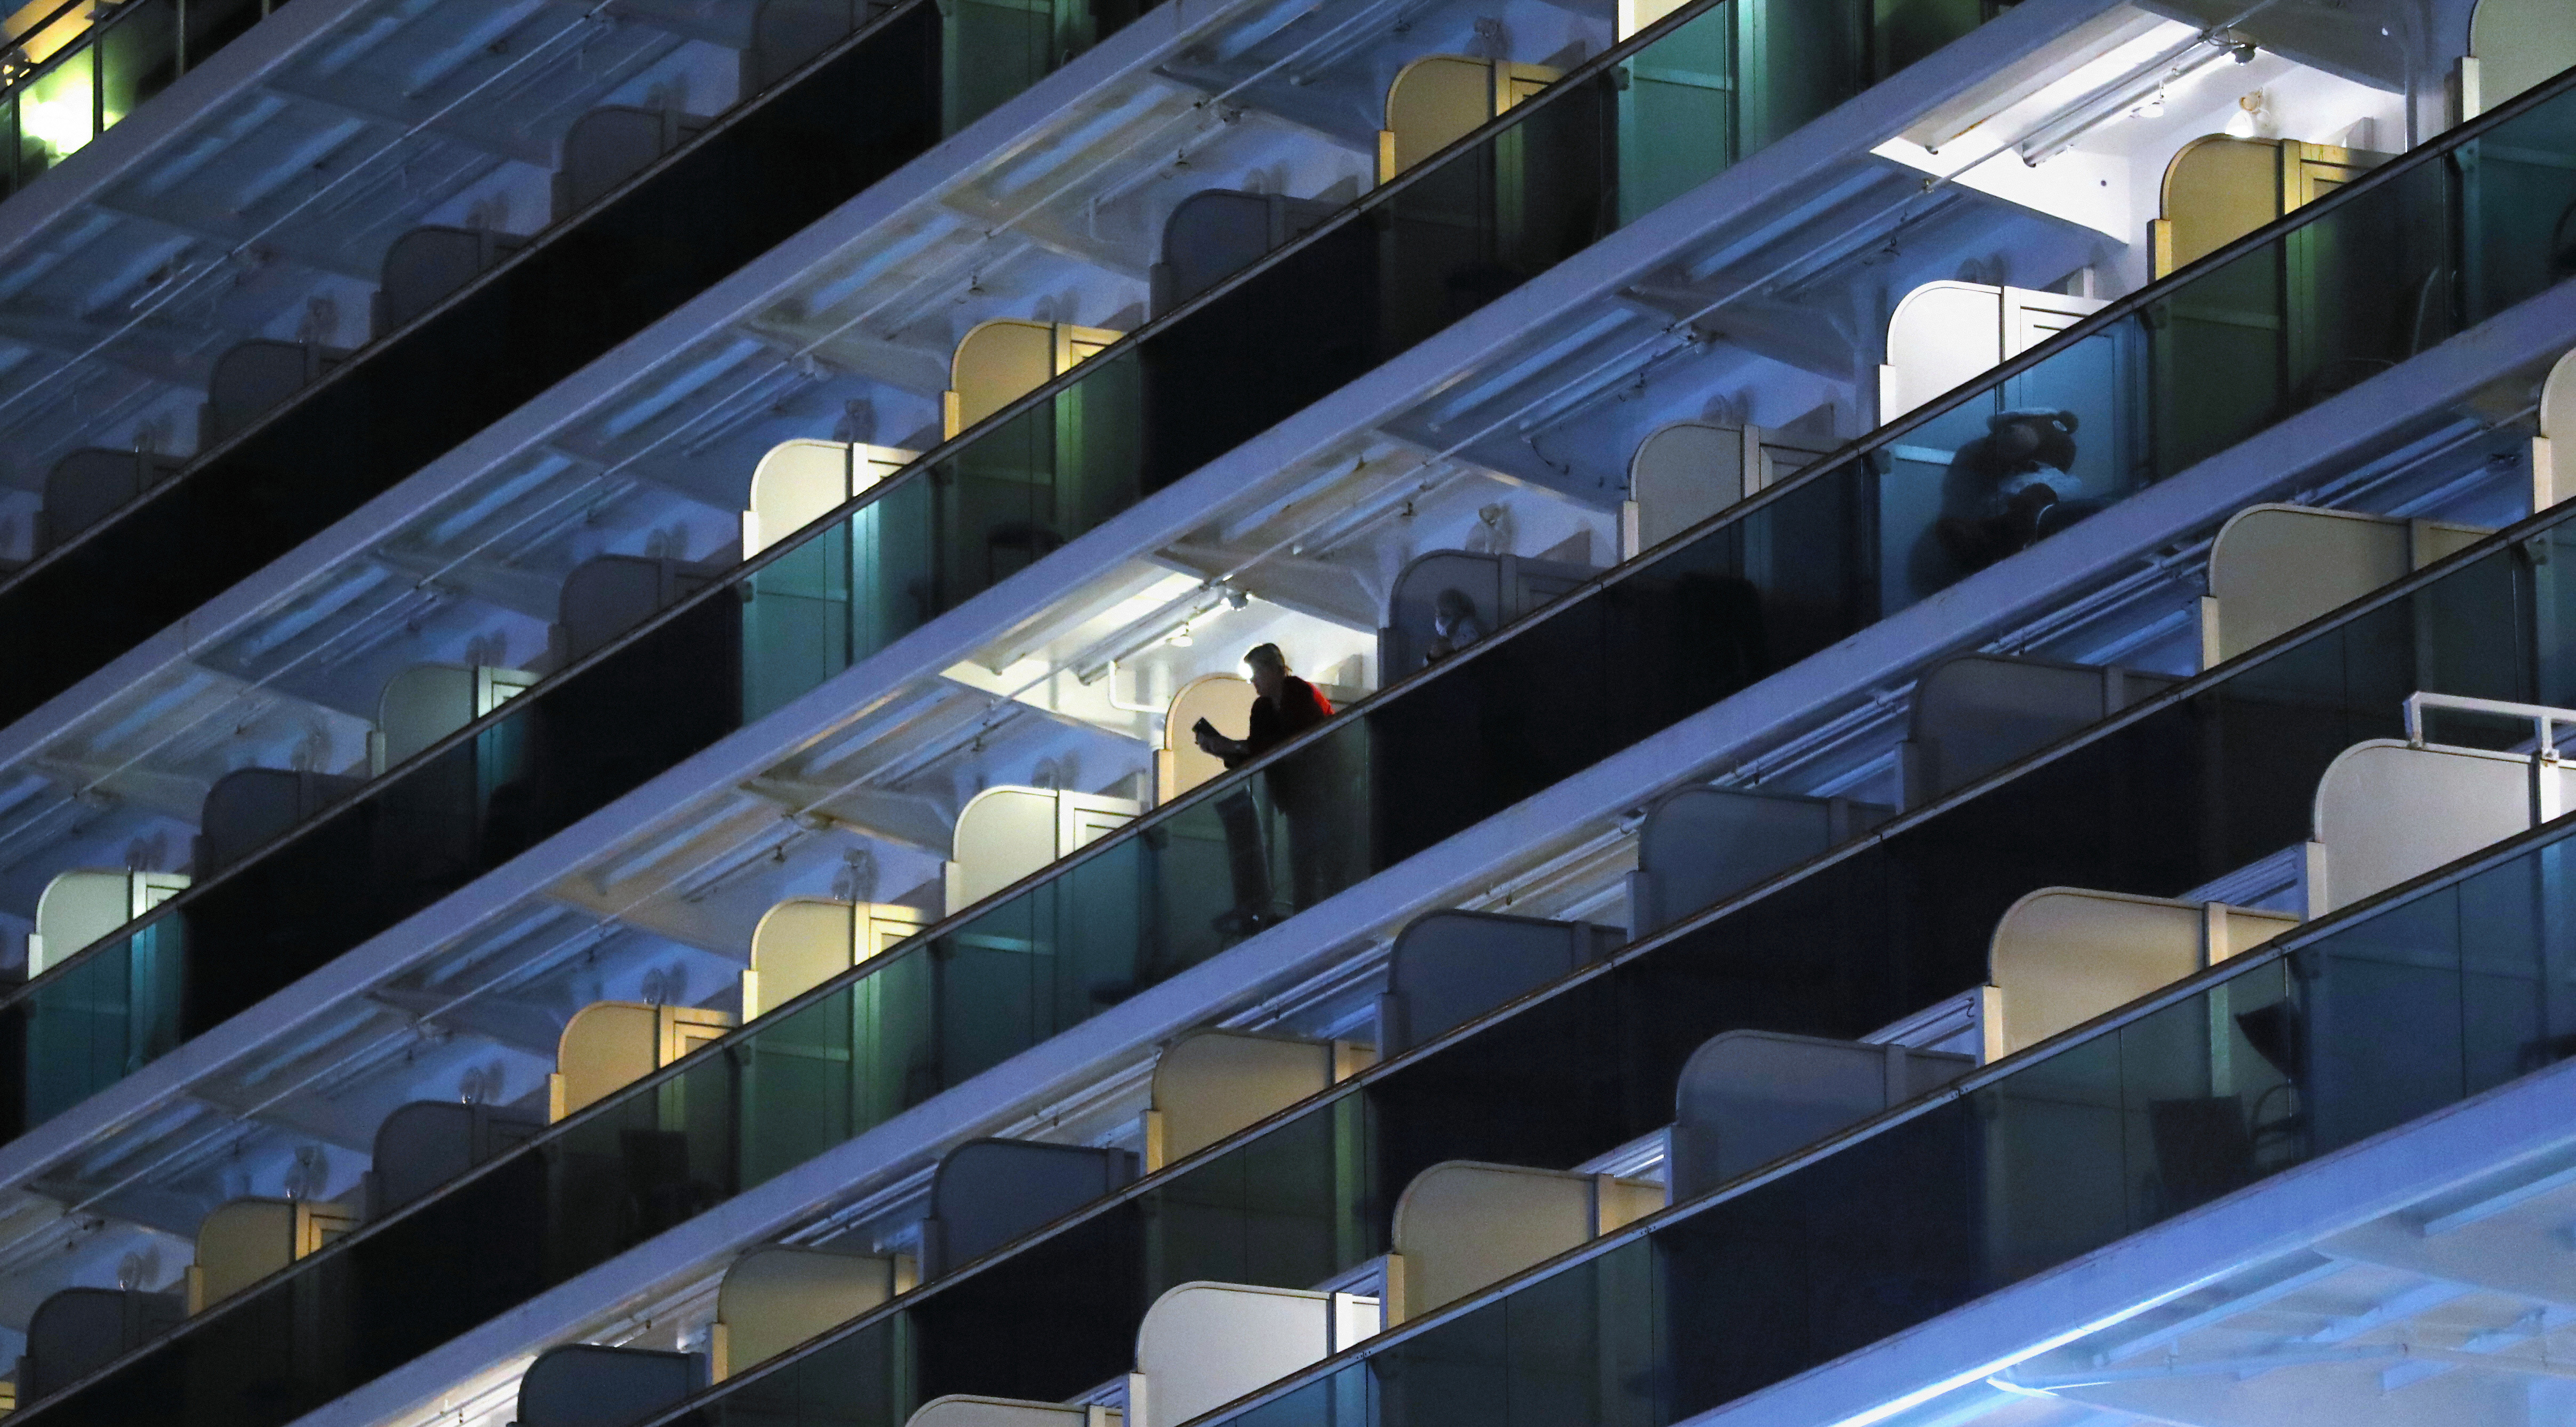 A passenger is seen at a balcony while clothes are hung on the Diamond Princess cruise ship on Friday.